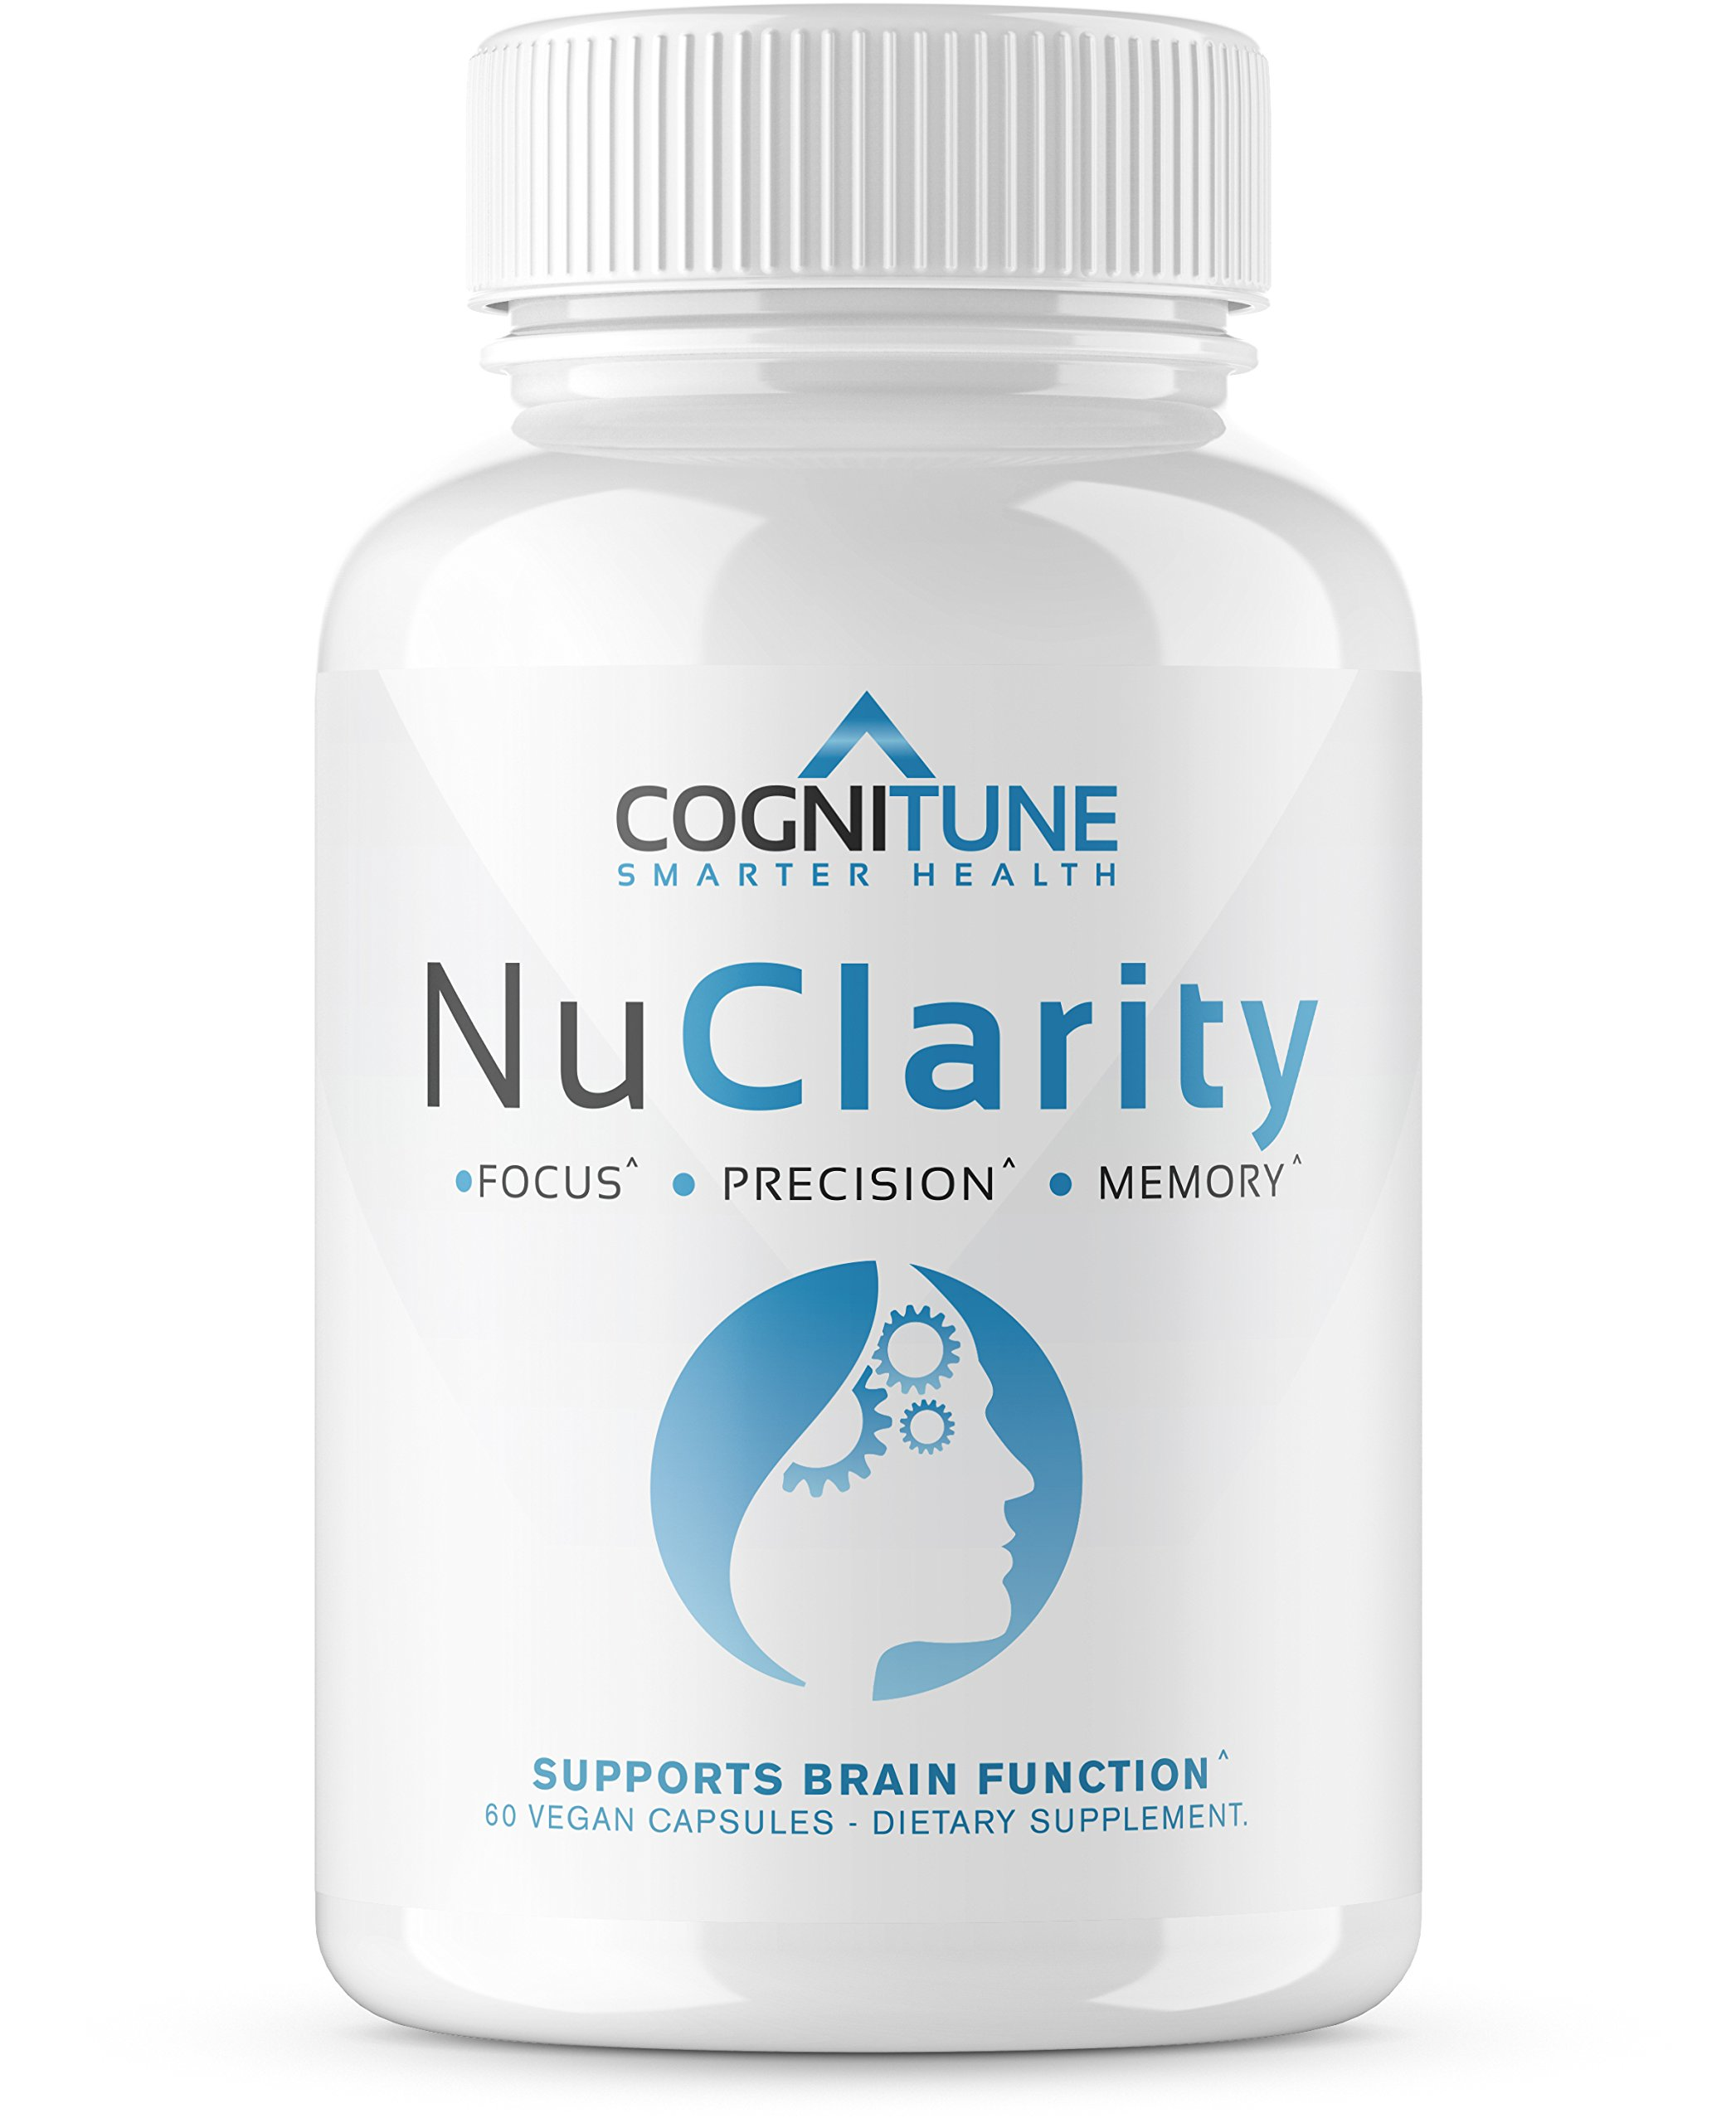 NuClarity - Premium Natural Nootropic Brain Supplement - #1 Focus, Energy, Memory Booster - Mental Health, Clarity & Cognitive Function Support - Ginkgo Biloba, Phosphatidylserine, Rhodiola Rosea